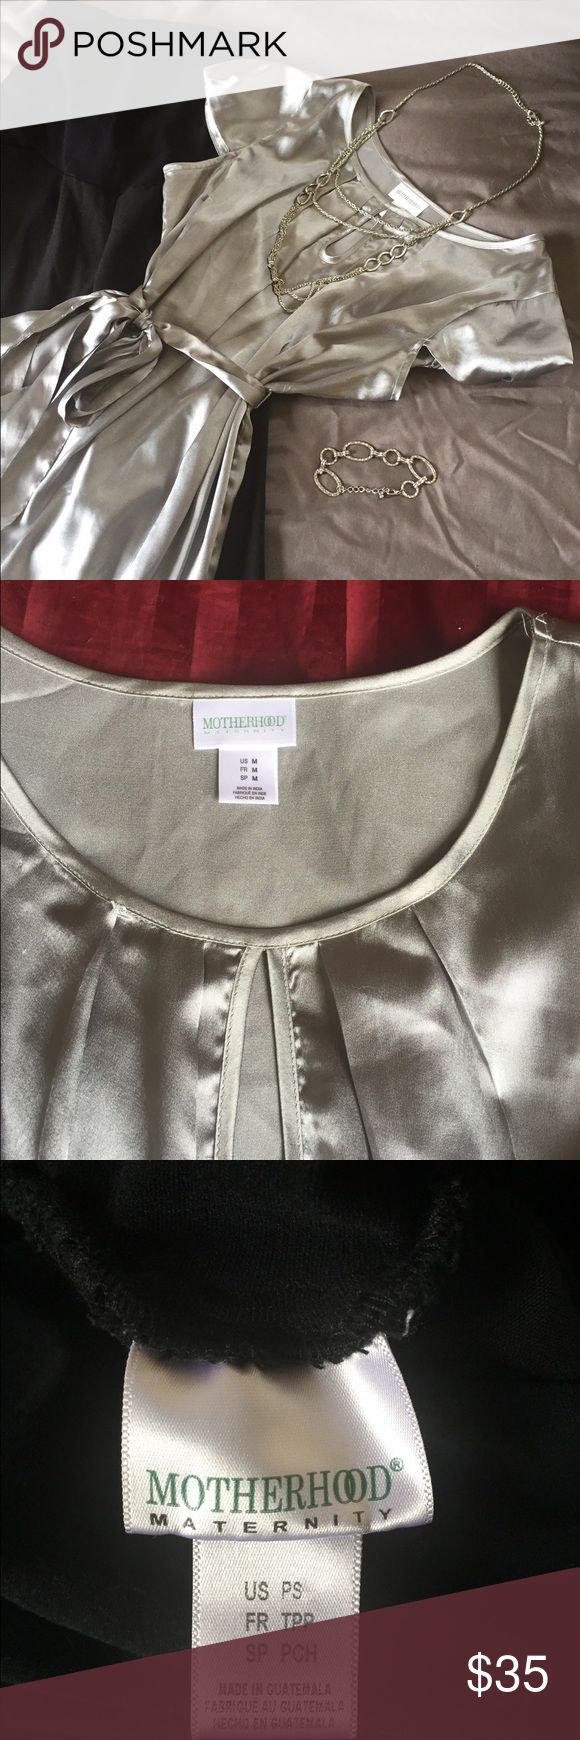 Maternity top with dress pants Silver maternity top with dress pants. Can be worn for work or a night out on the town. EUC can be sold separately or as a set. Jewelry listed in separate post. Motherhood Maternity Other